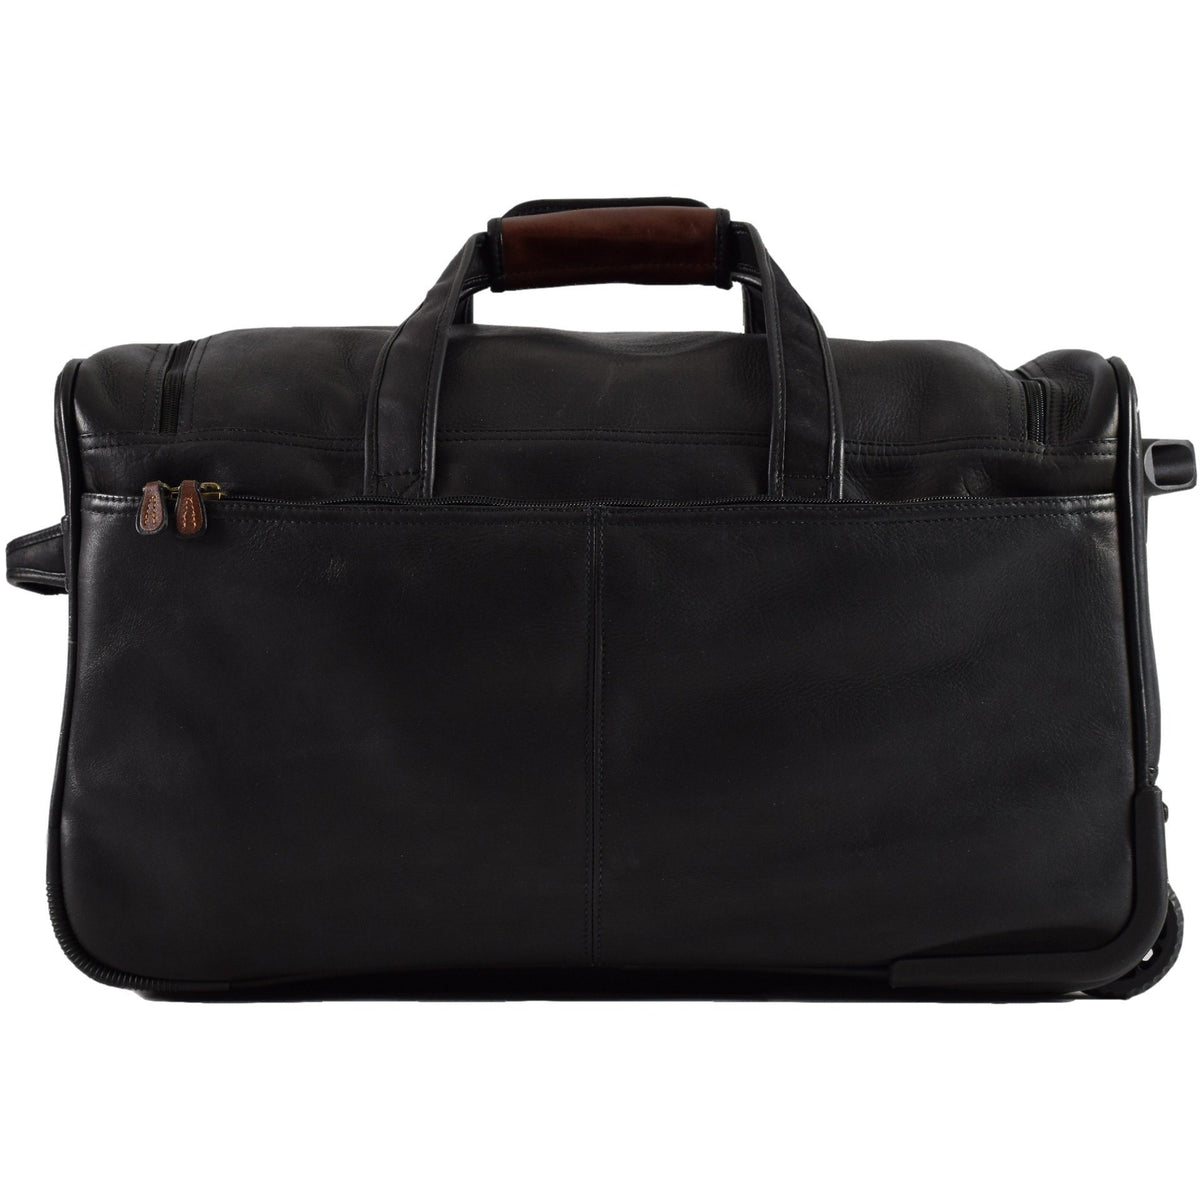 Santa Fe Wheeled Duffel Bag, Duffel Bag | LAND Leather